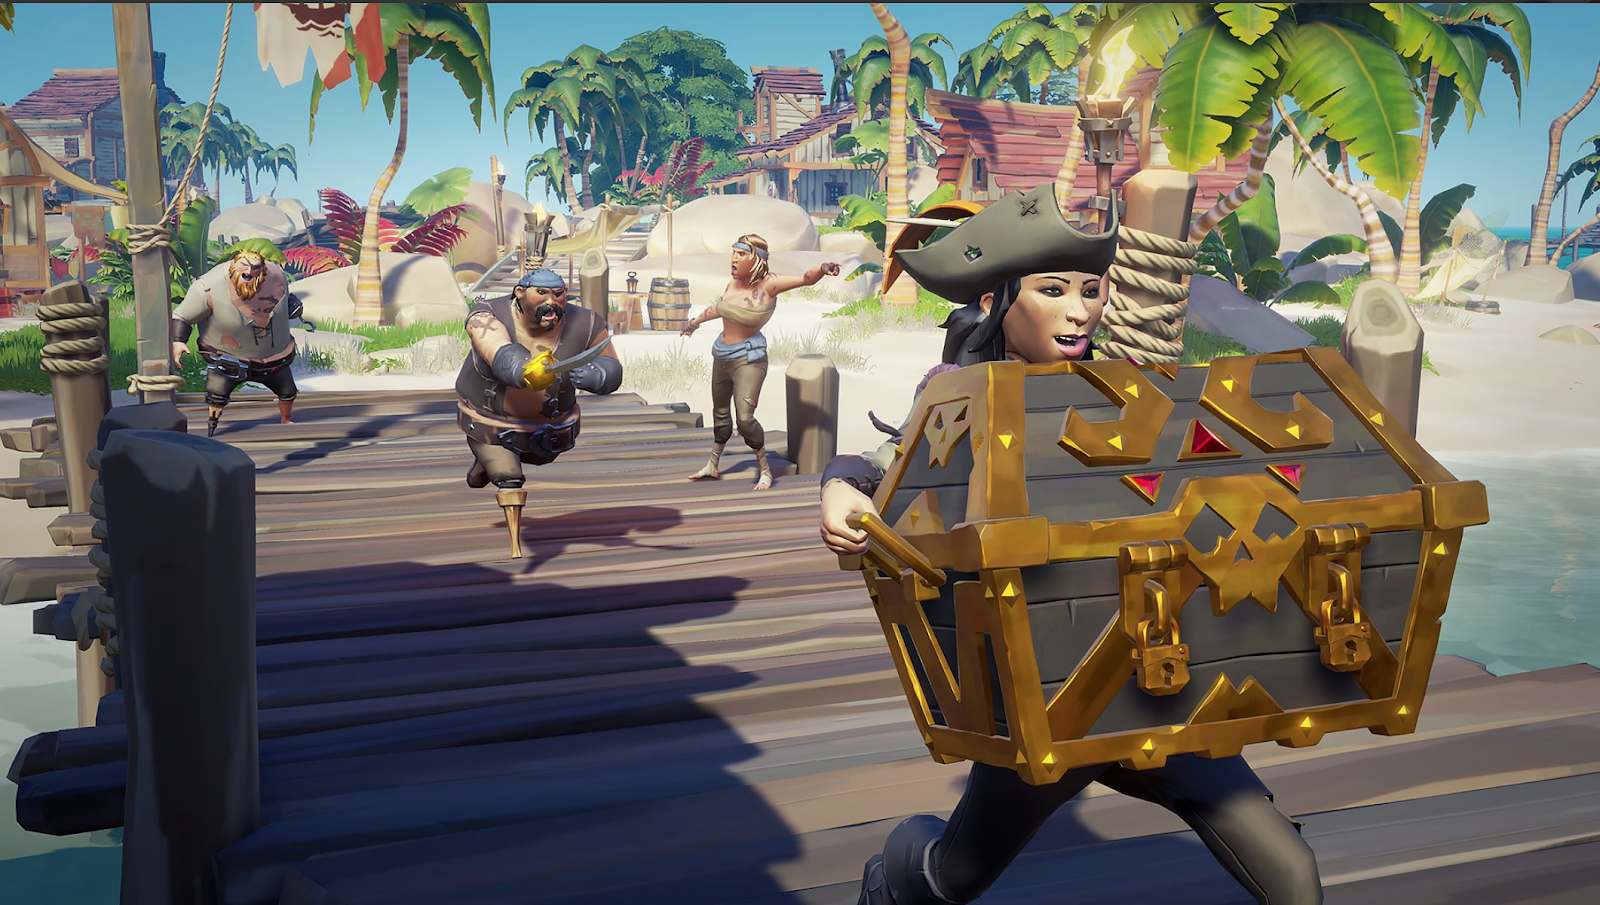 Sea Of Thieves Players Compete To See Who Can Find The Most Treasure